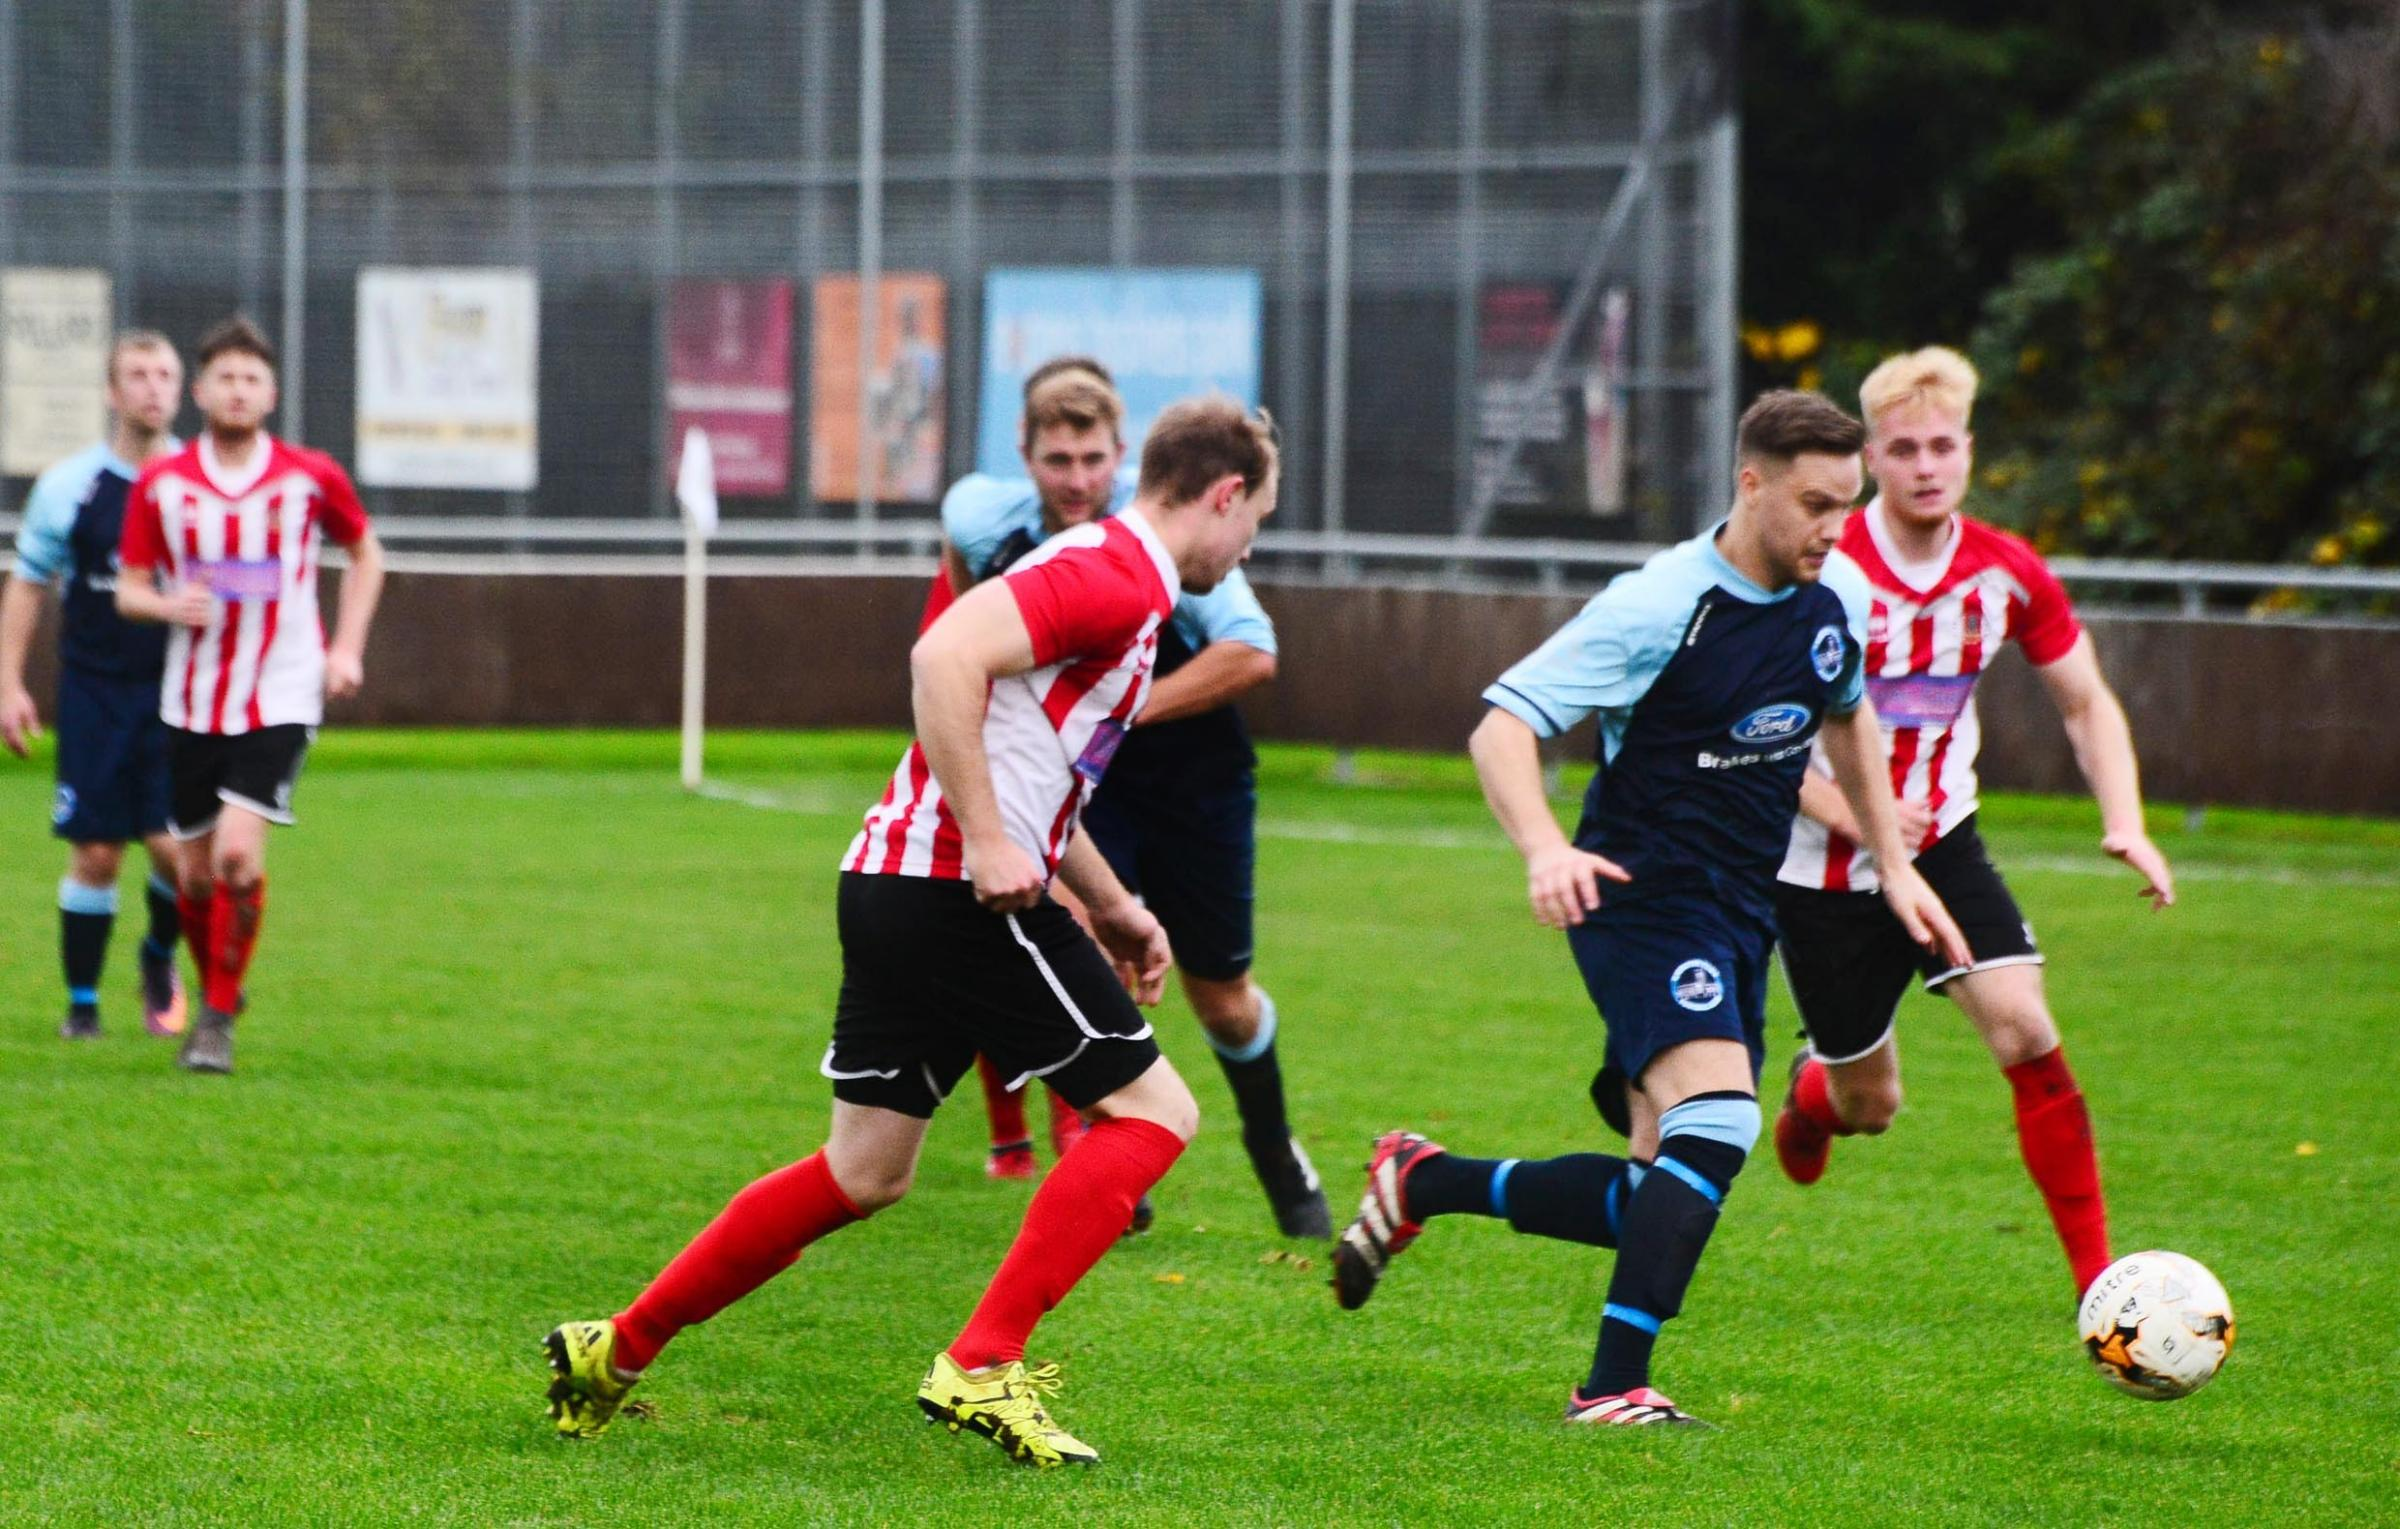 BACK-TO-BACK: Ilminster Town are looking to build on last weekend's win. Pic: Steve Richardson